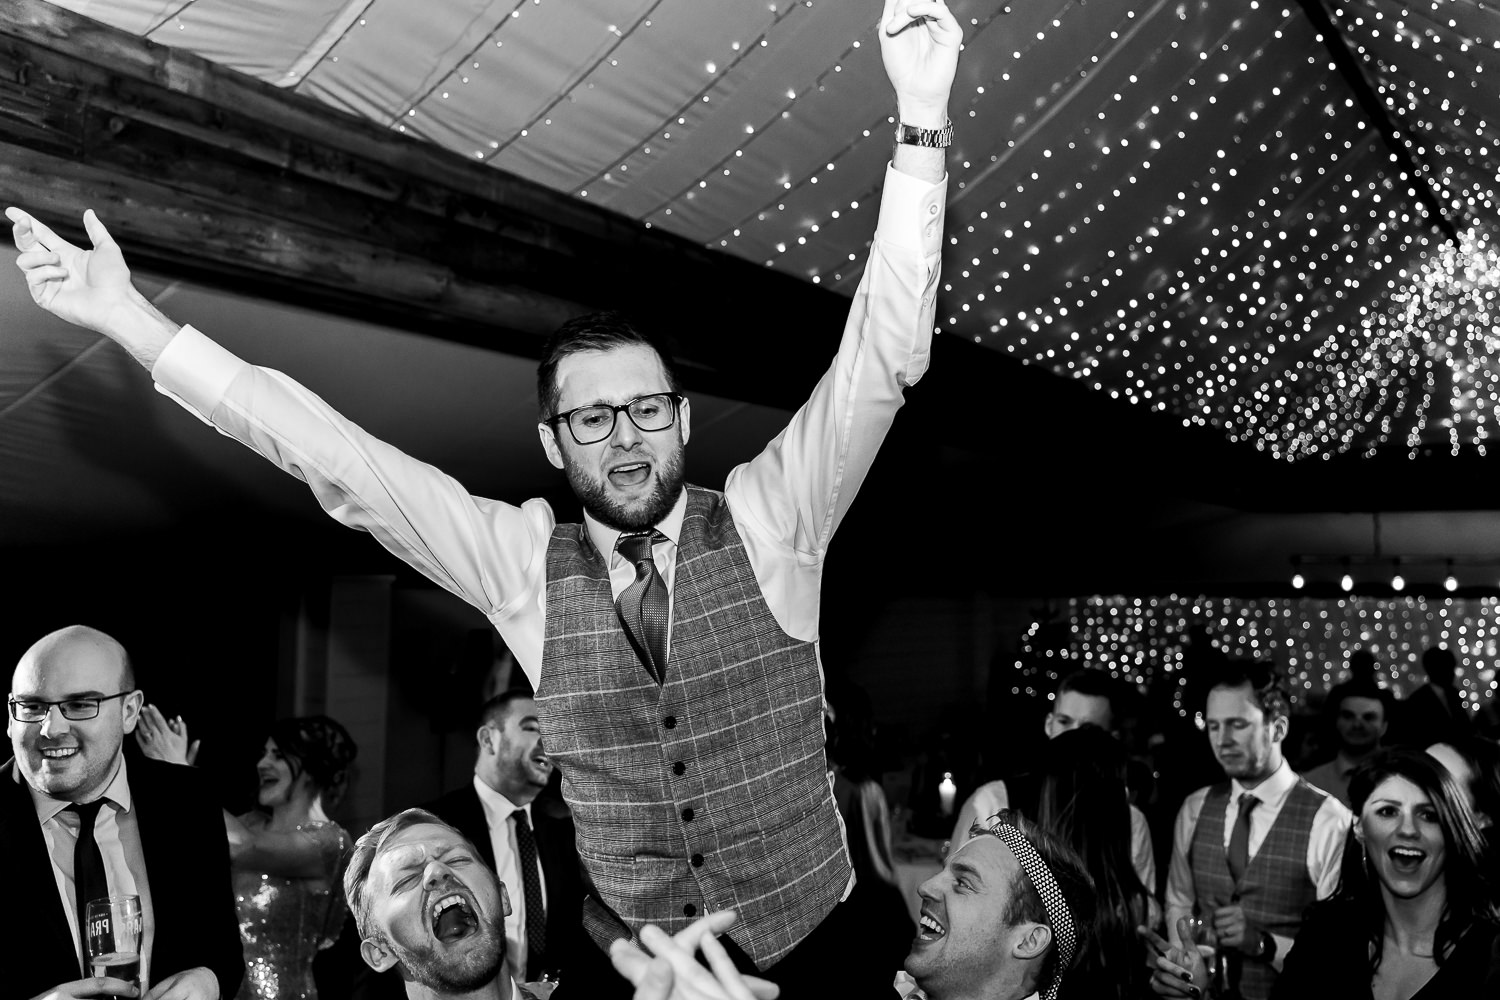 Groom being picked up on the dance floor